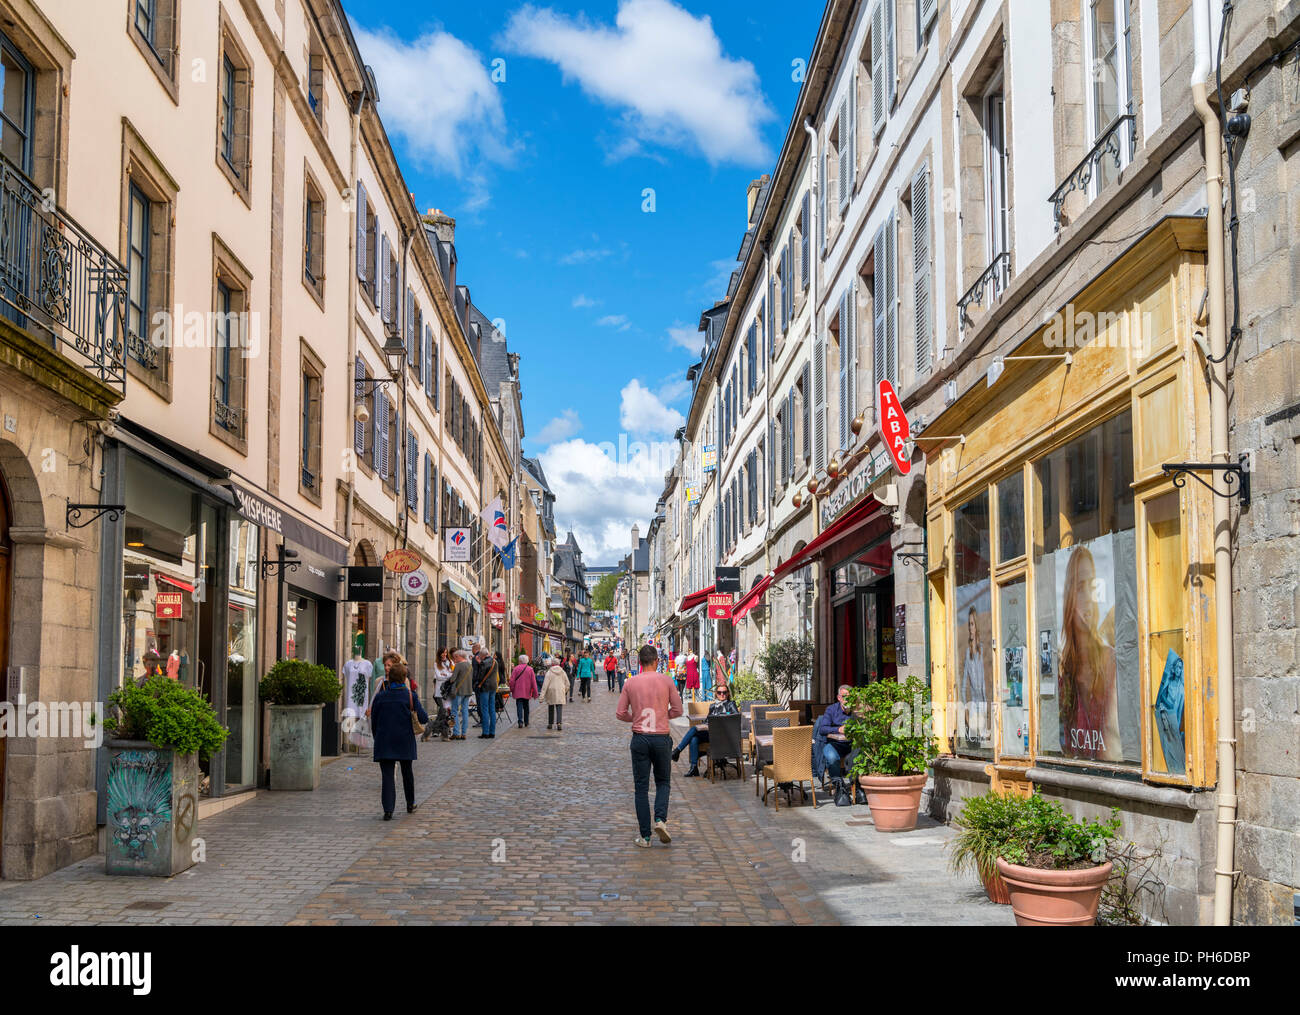 Shops on Rue Élie Freronl in the old town, Quimper, Finistere, Brittany, France - Stock Image